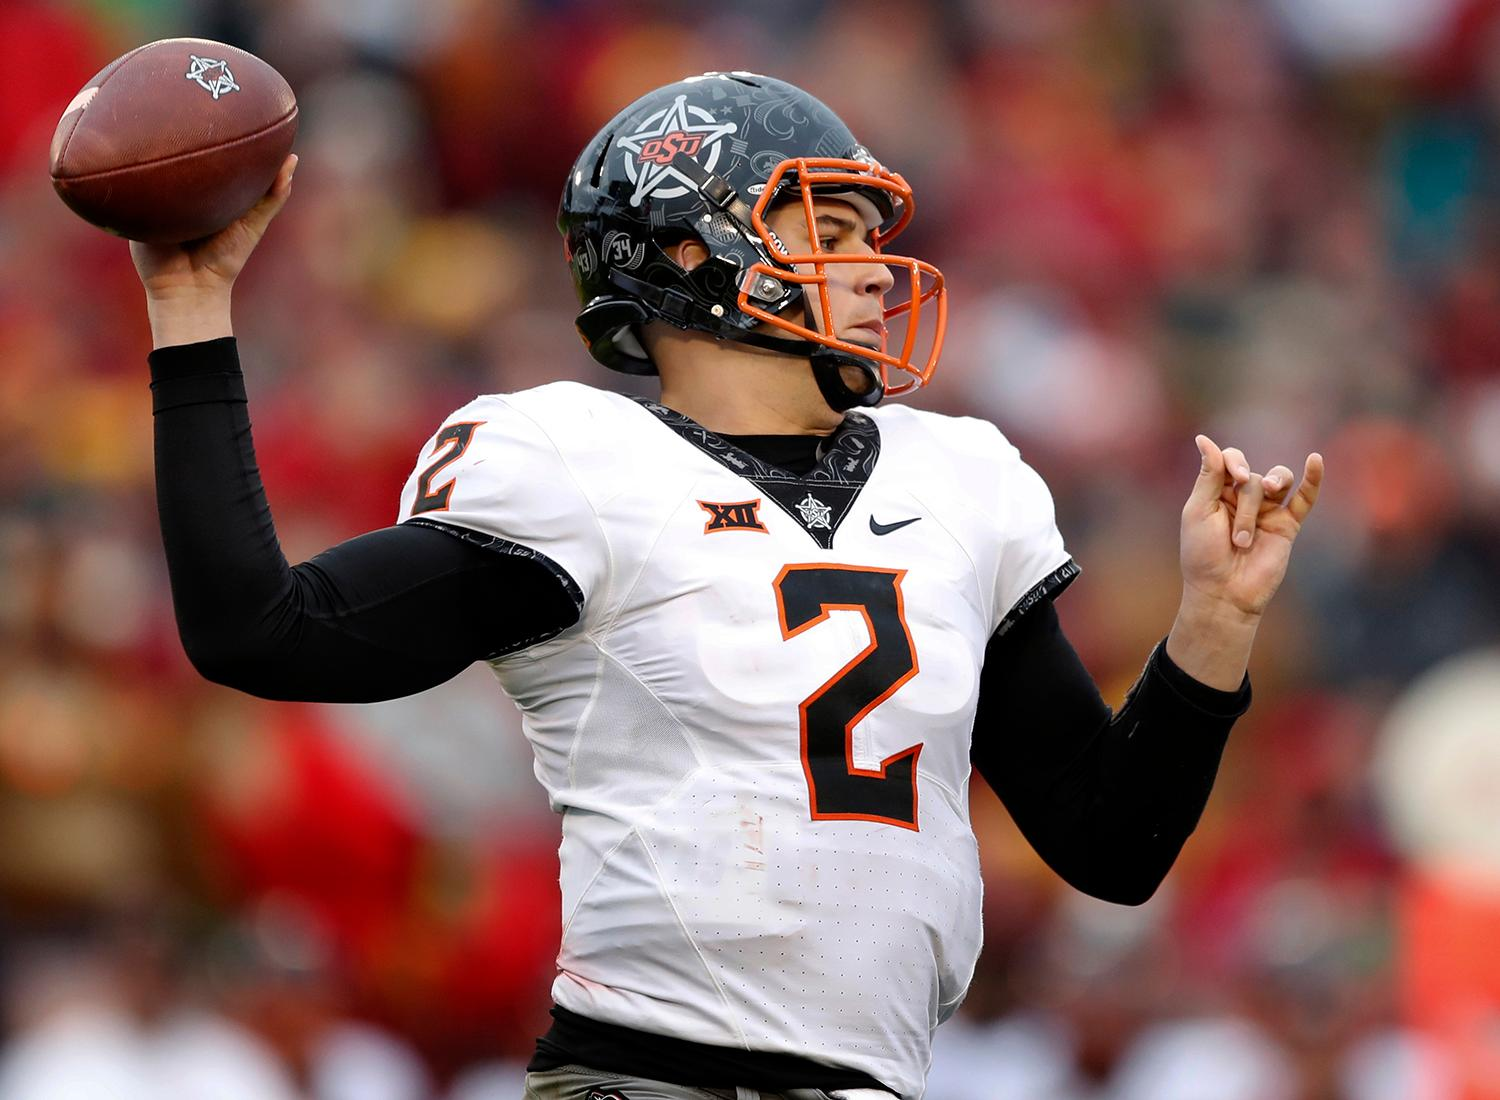 Mason Rudolph to sit out #SeniorBowl with foot sprain.  https://t.co/J08rks1t6f (via @RapSheet) https://t.co/MjXRsEbqLh